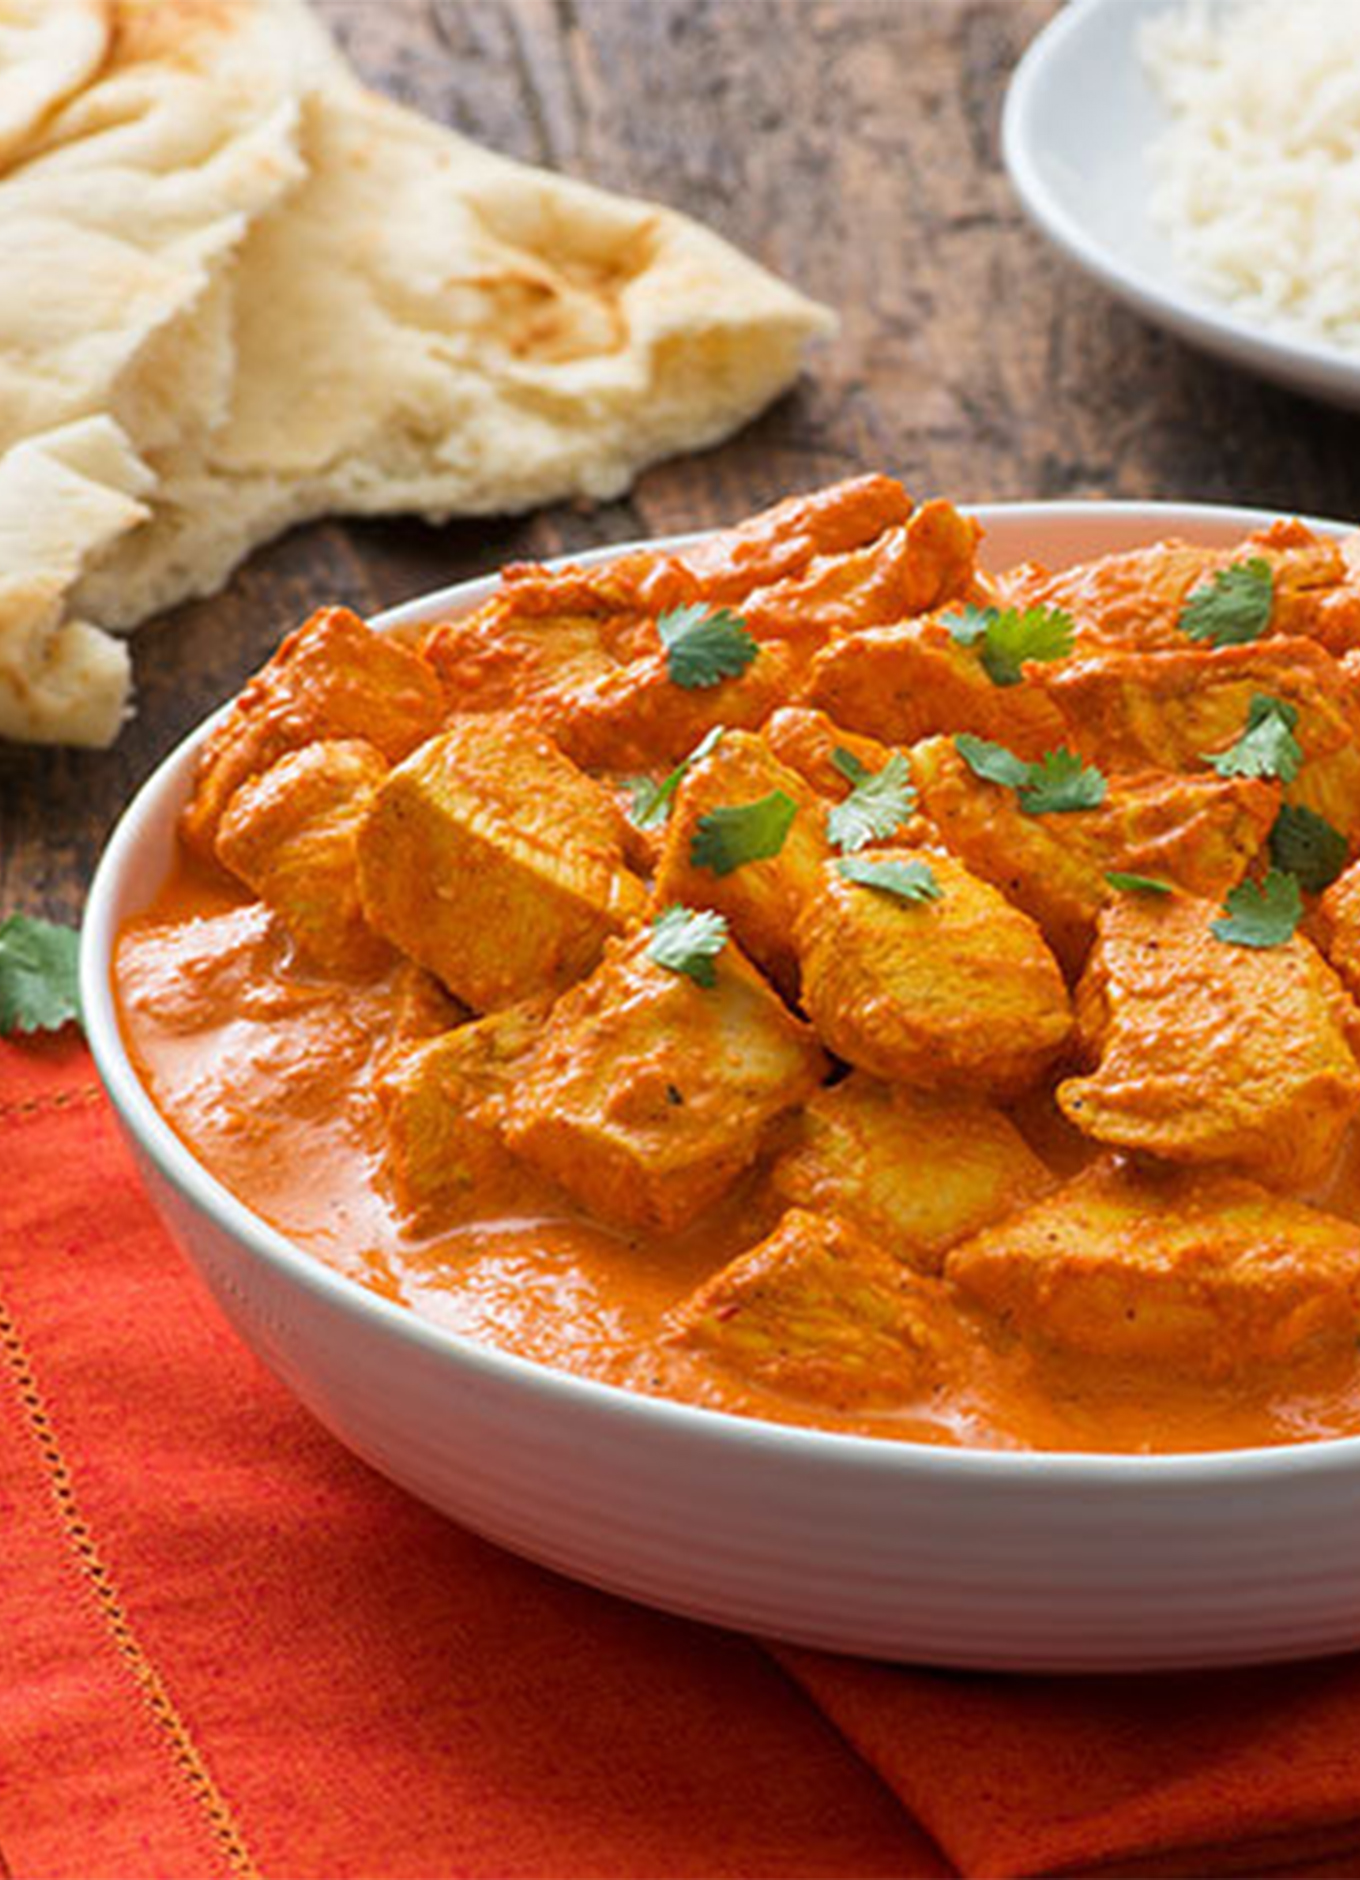 A bowl filled with steaming Chicken Tikka Masala served with a side of naan and rice.